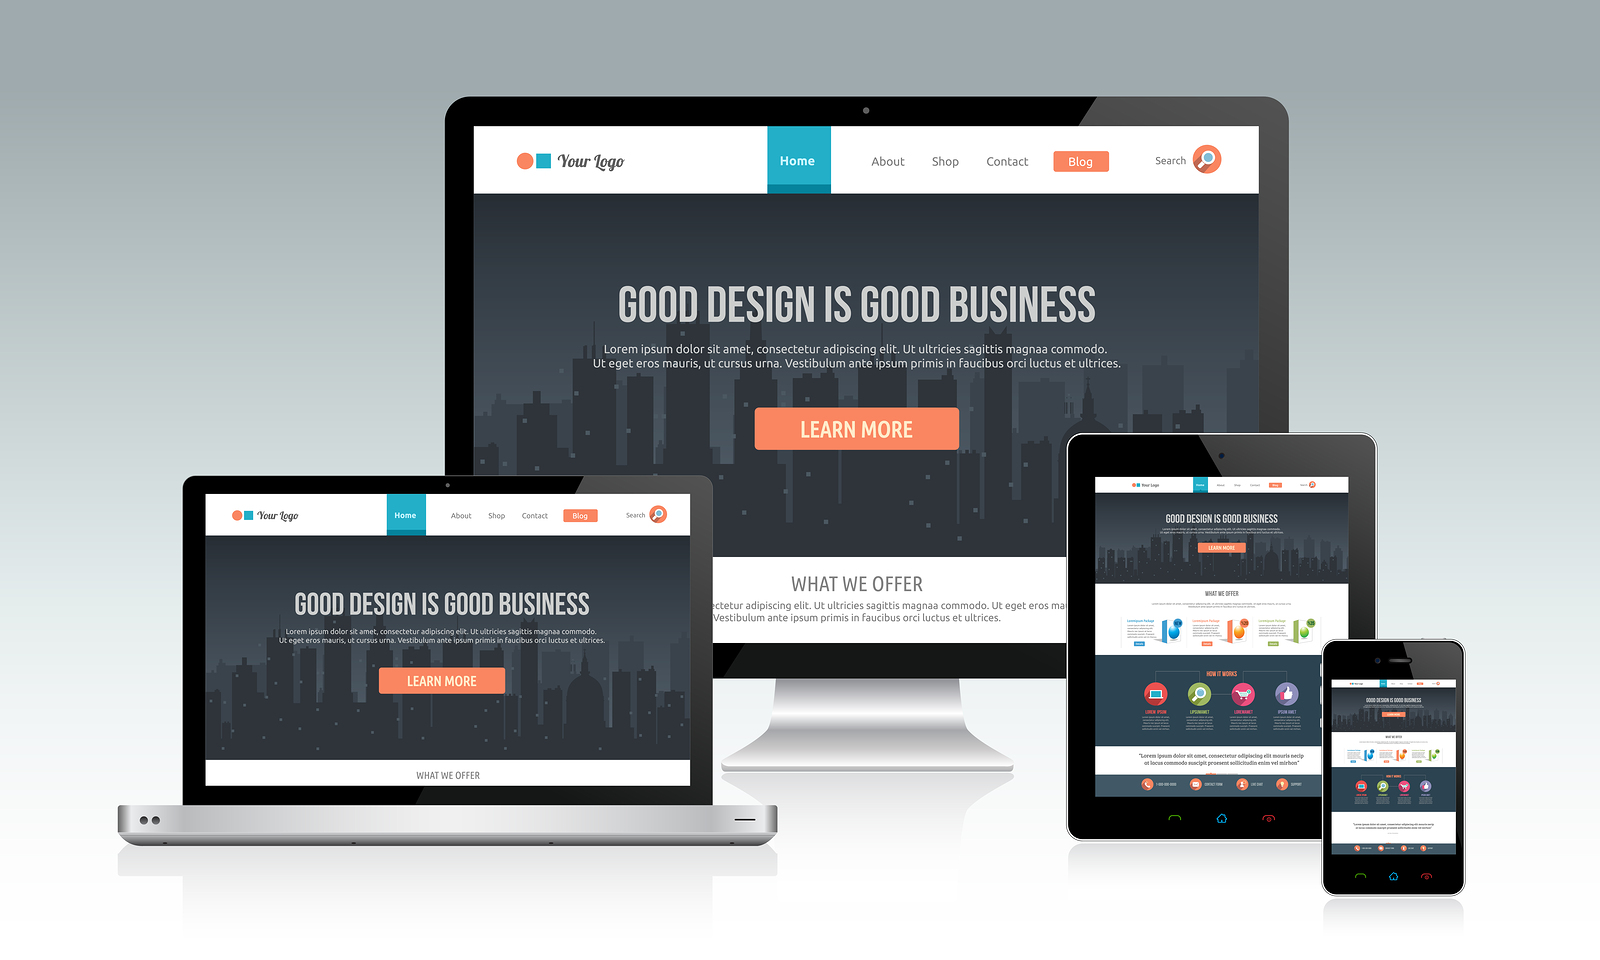 6 Responsive Web Design Tutorial Images